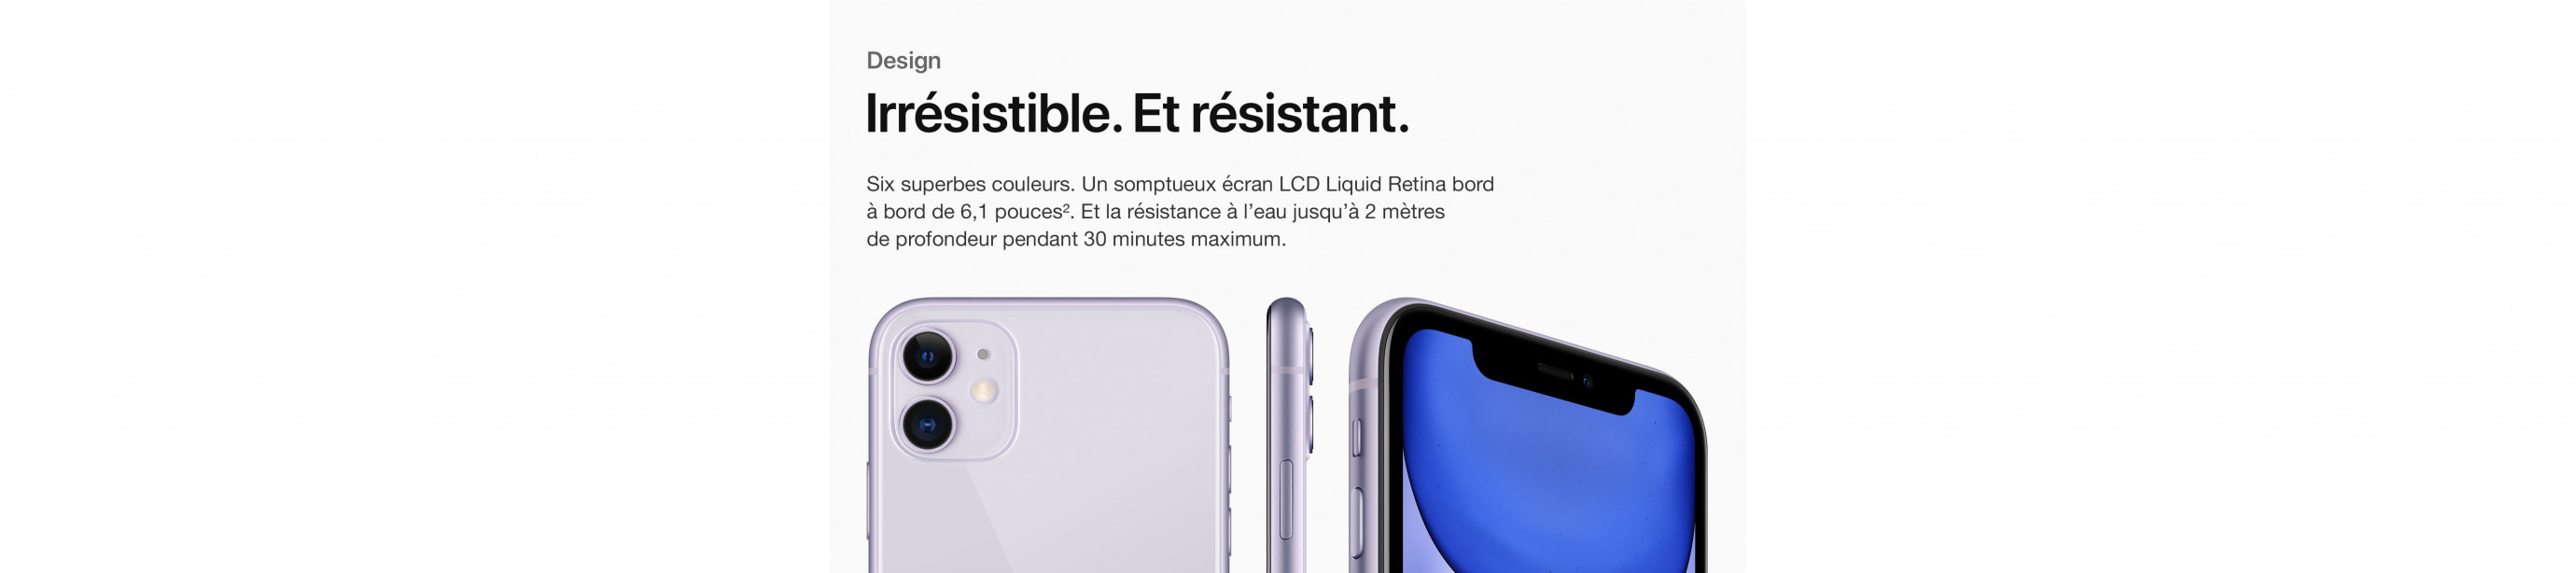 iPhone11-productpage-fr_01_04.jpg